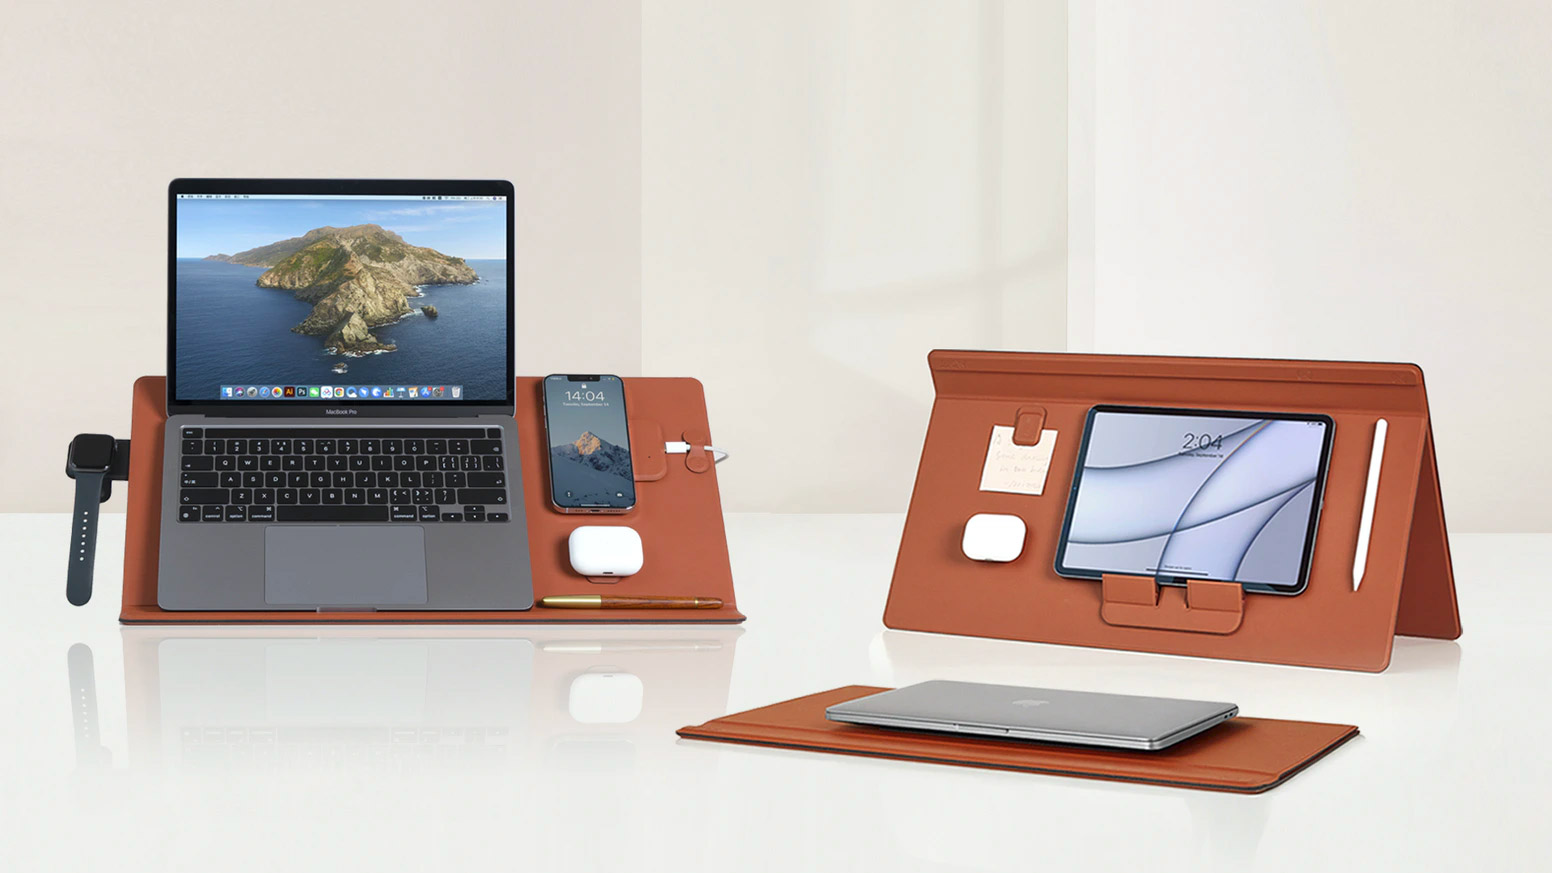 This Desk Mat Stands Up for All Your Devices at werd.com